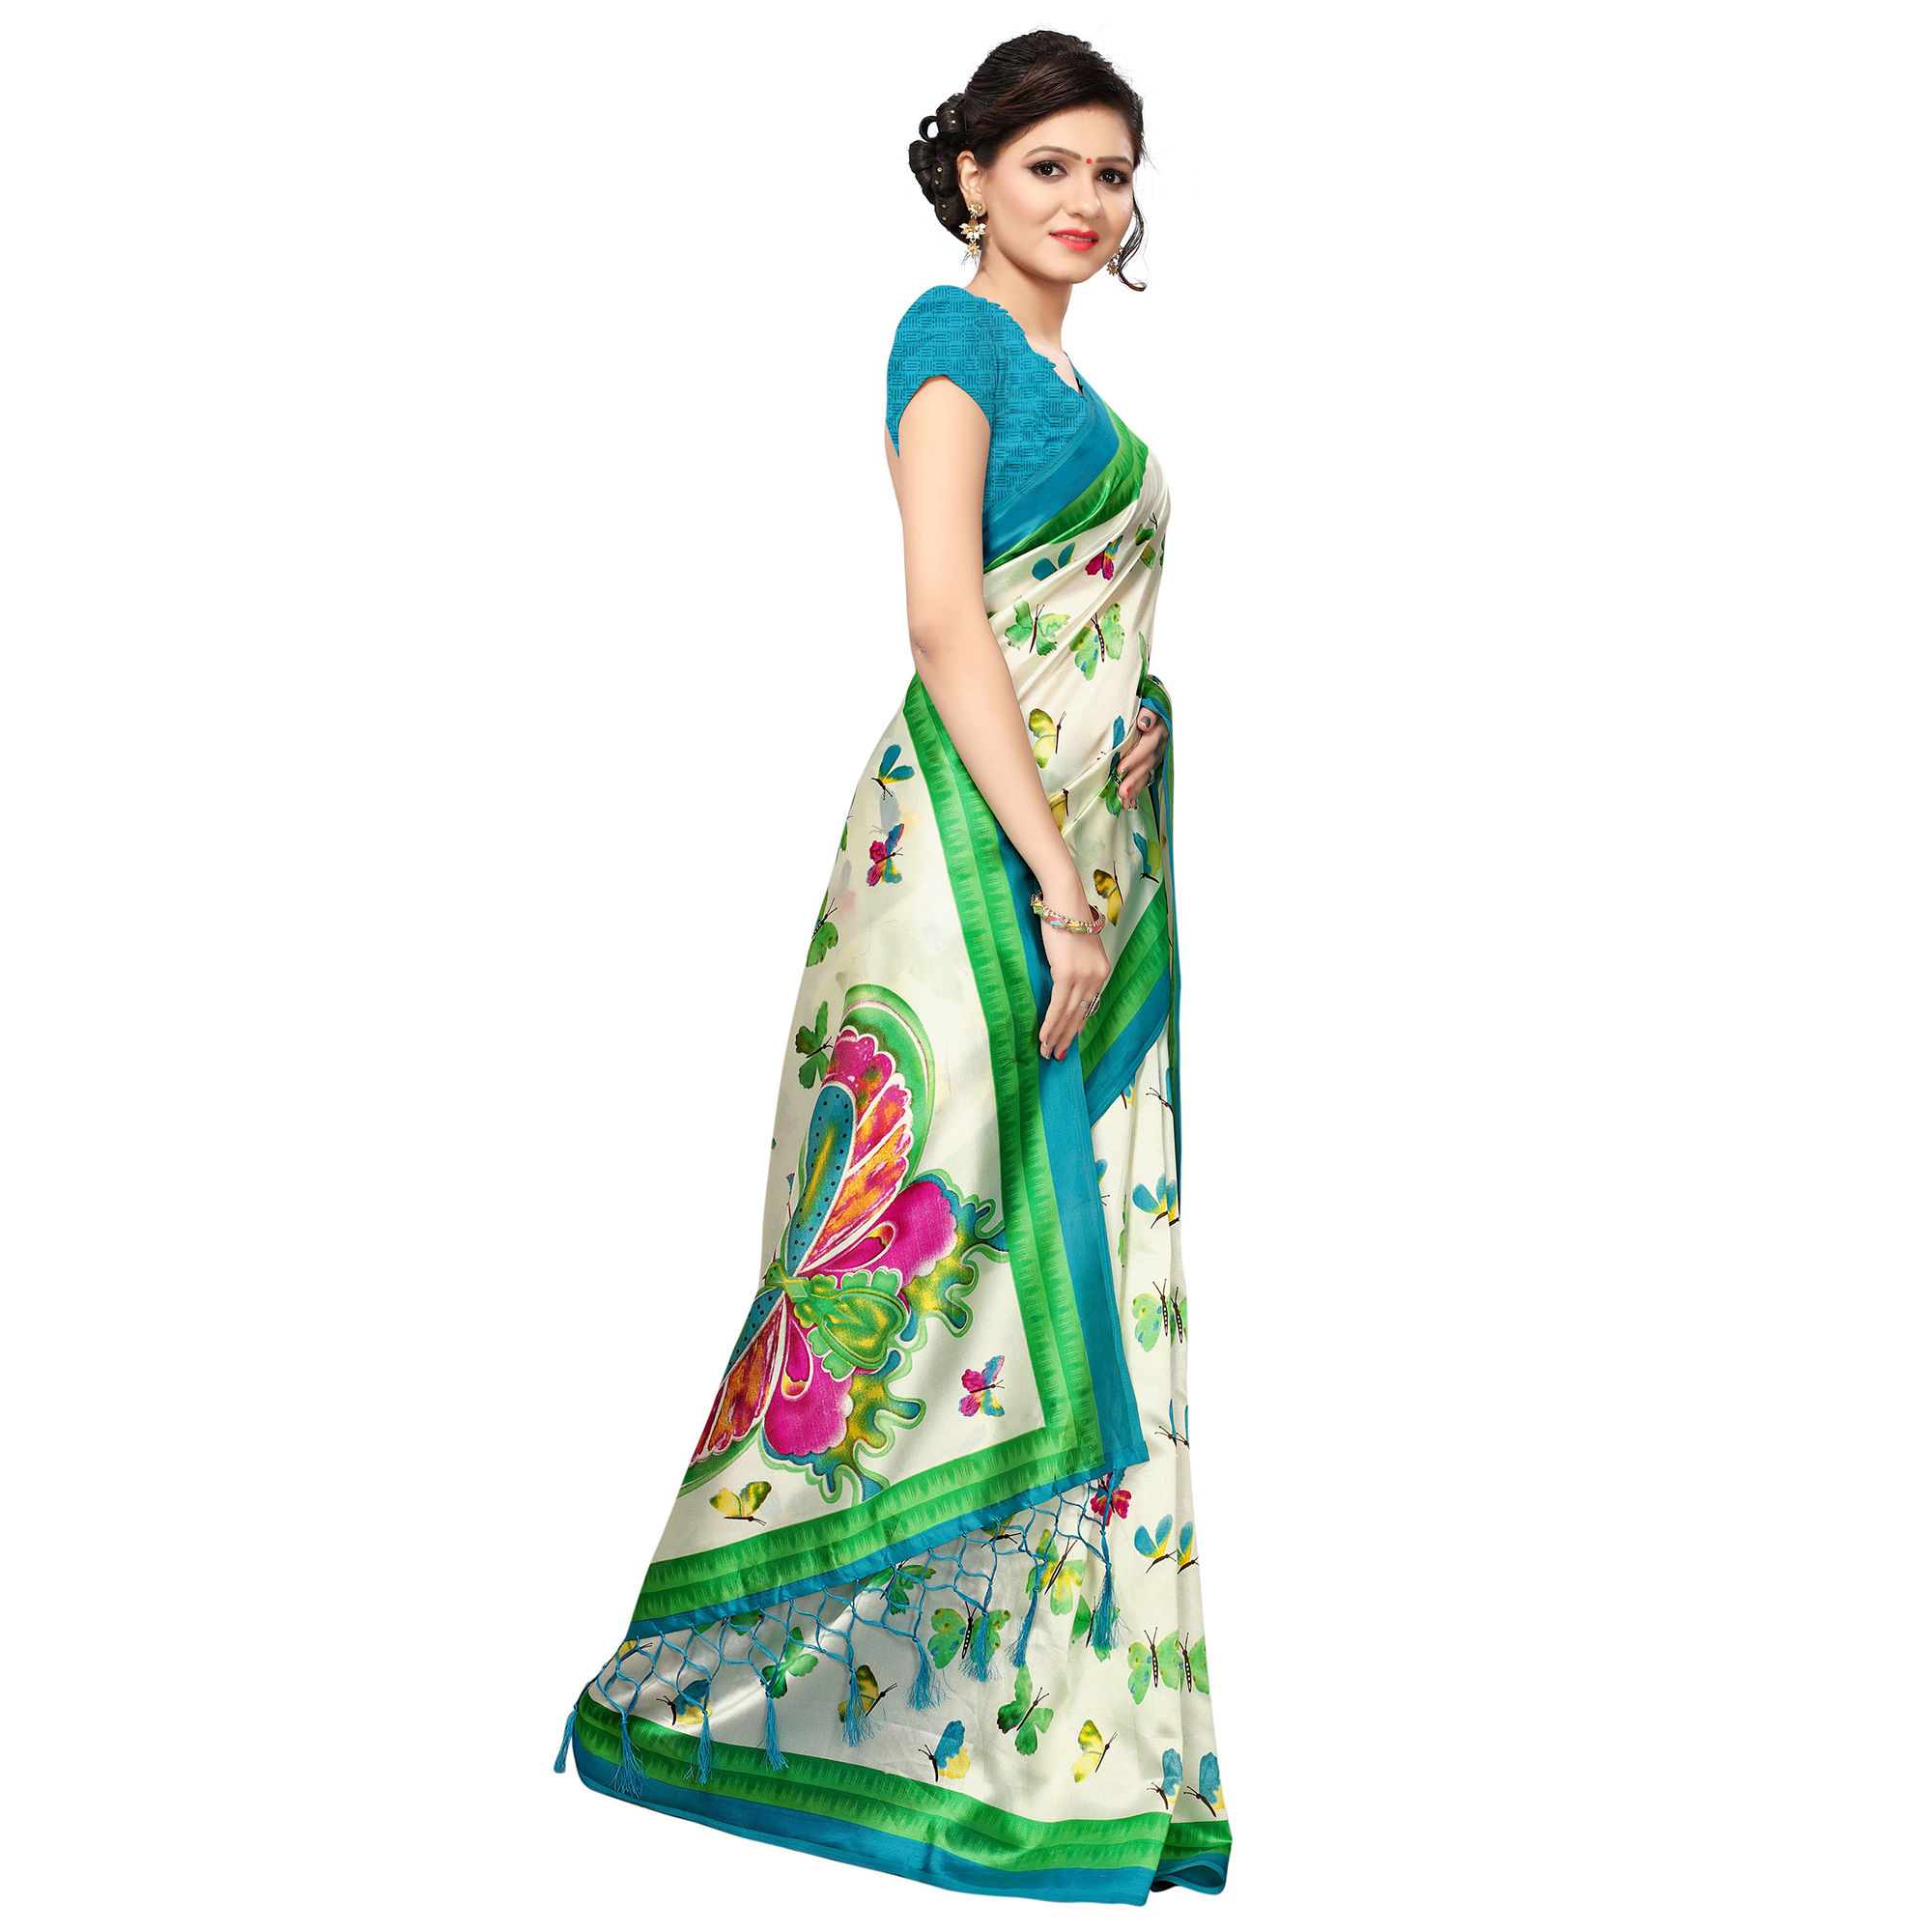 Pleasance Cream-Green Colored Casual Printed Khadi Silk Saree